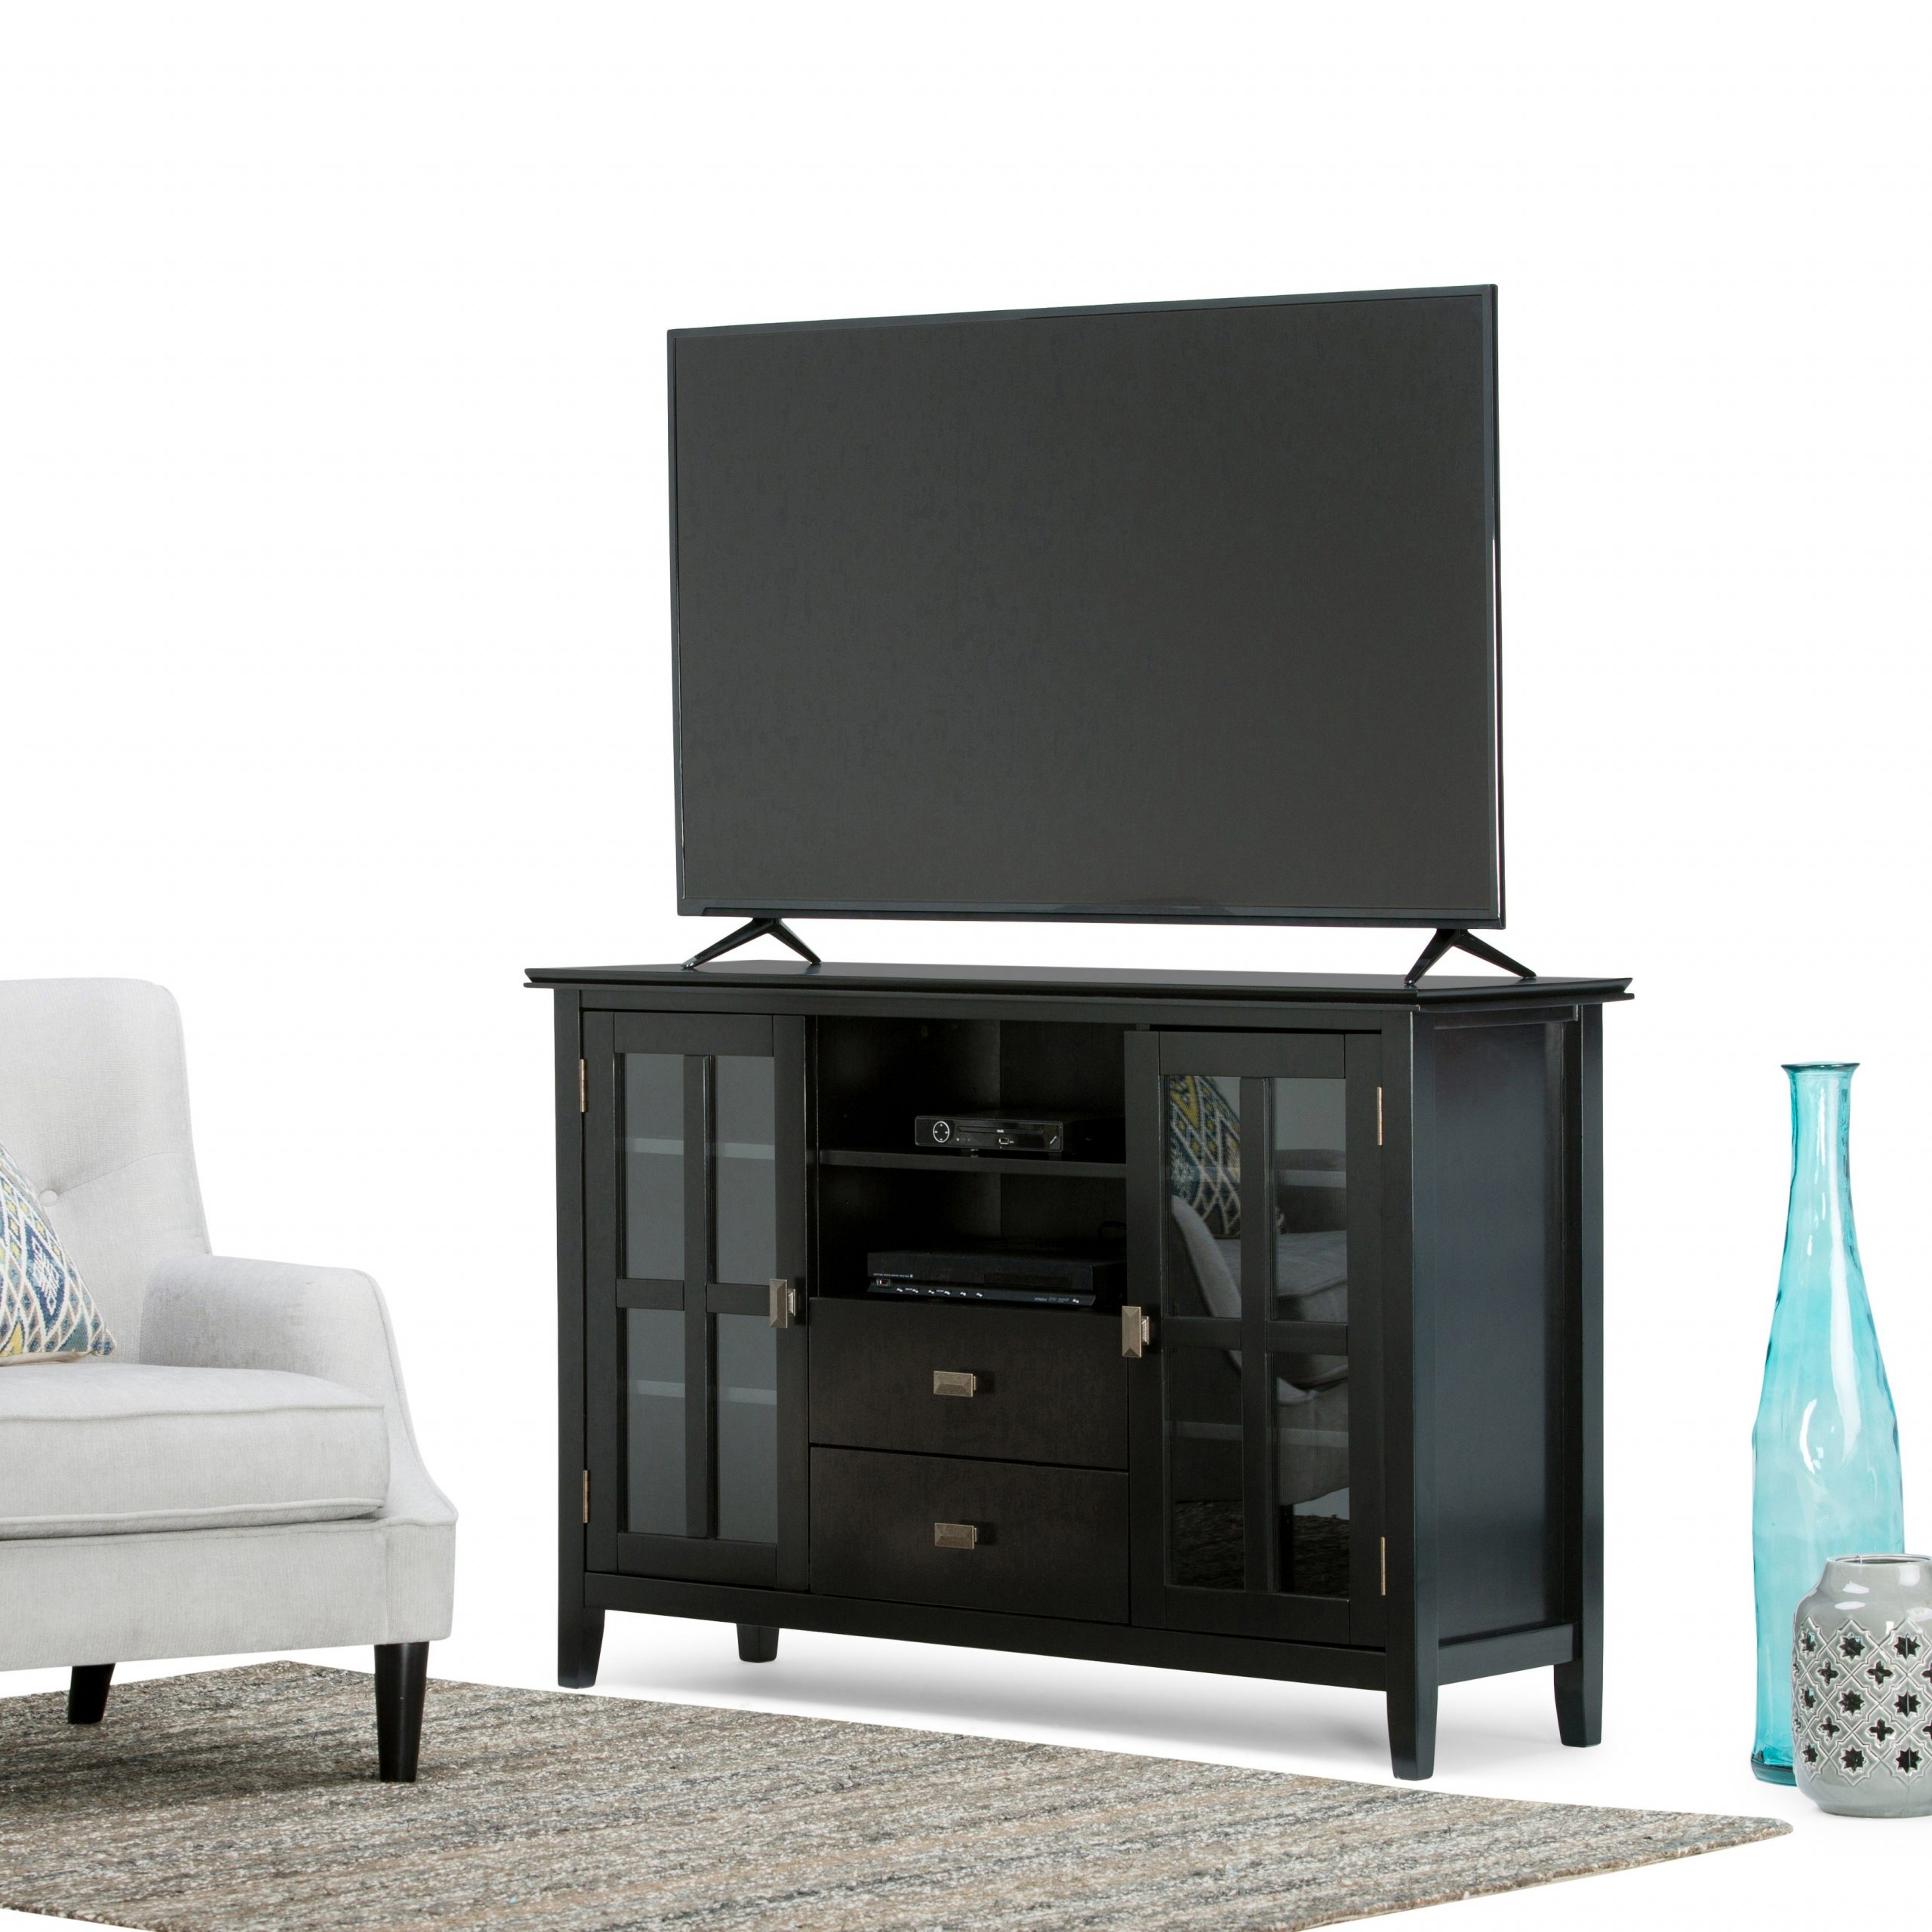 Wyndenhall Stratford Solid Wood 53 Inch Wide Contemporary Regarding Bromley Extra Wide Oak Tv Stands (View 16 of 20)